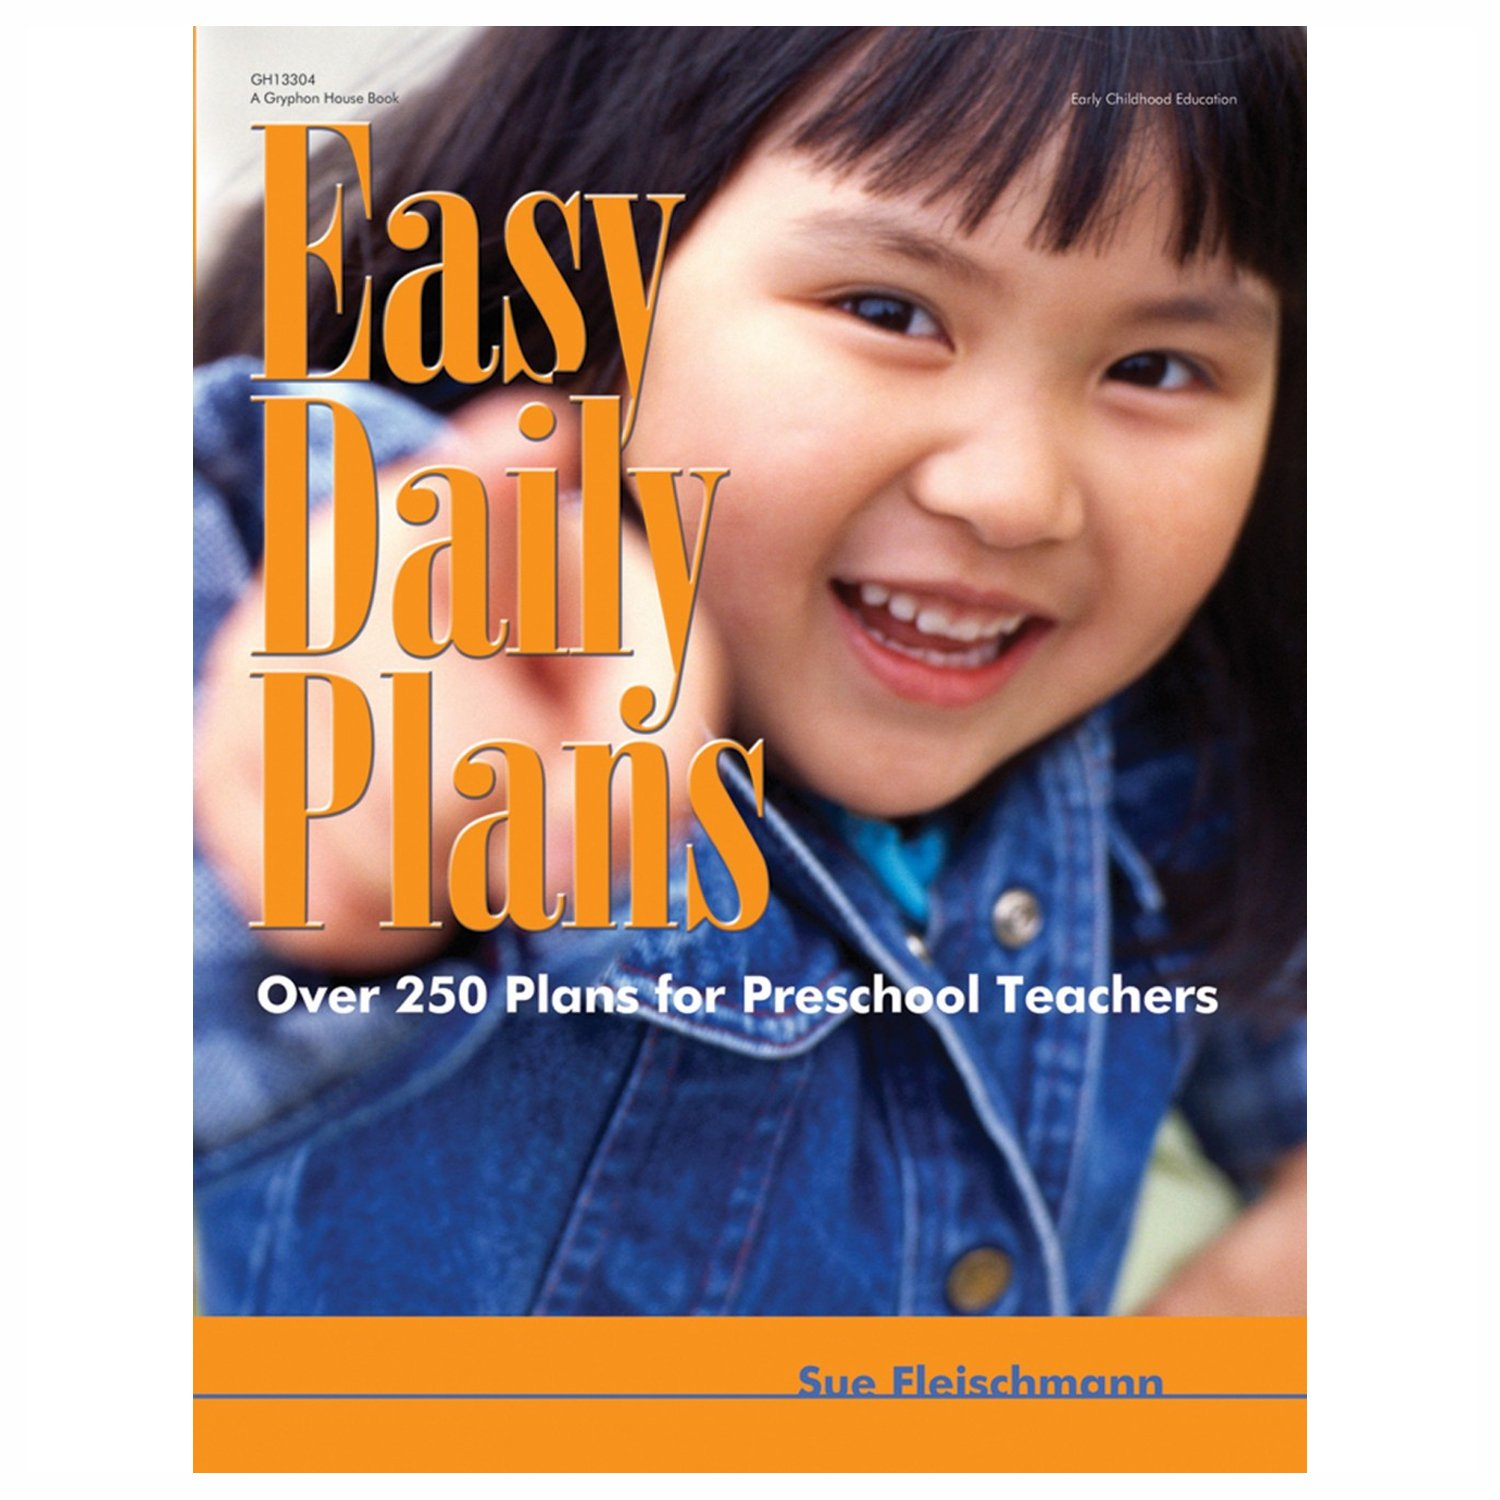 Download Easy Daily Plans: Over 250 Plans for Preschool Teachers (Early Childhood Education) pdf